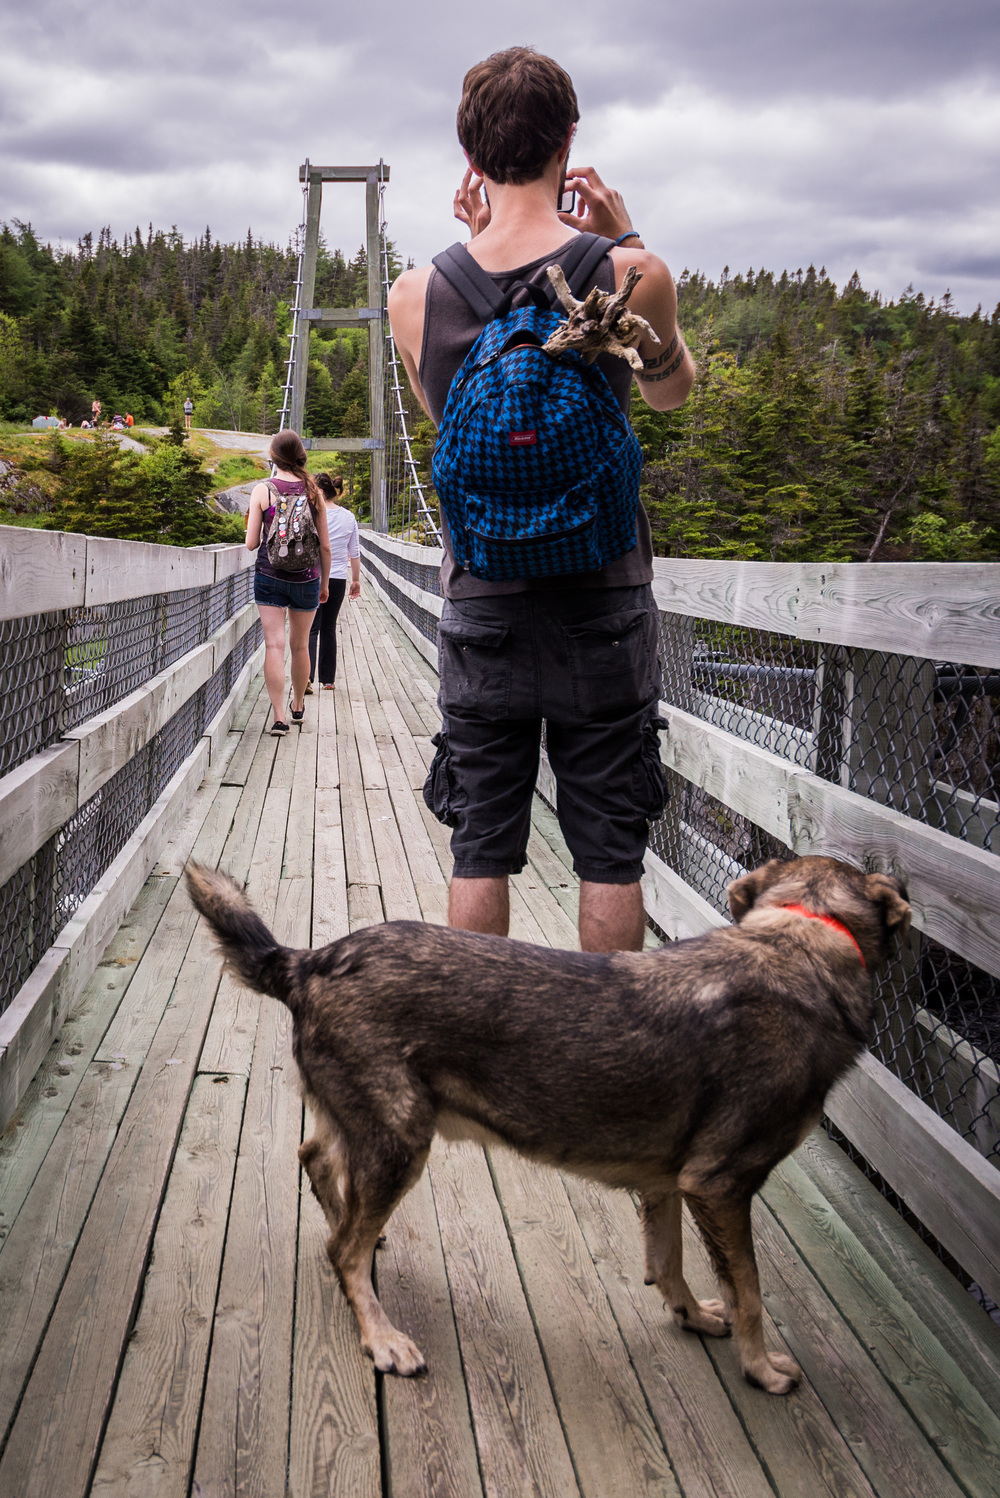 The East Coast Trail Association rebuilt the suspension bridge in the late 90s. Bigg-E didn't know what to make of it.